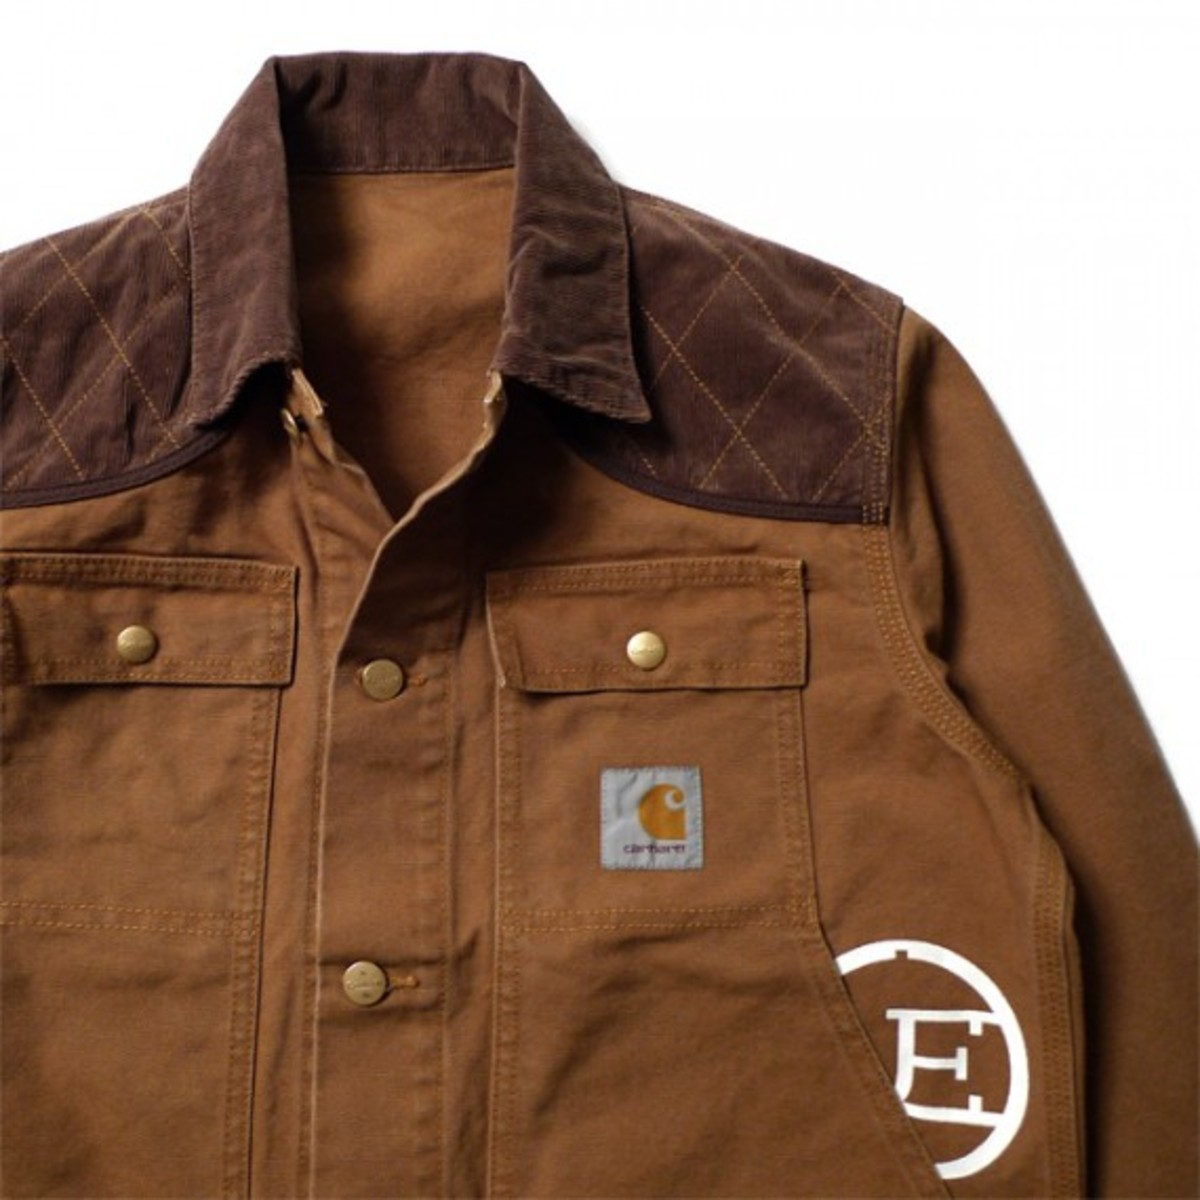 uniform-experiment-carhartt-hunting-jacket-brown-04